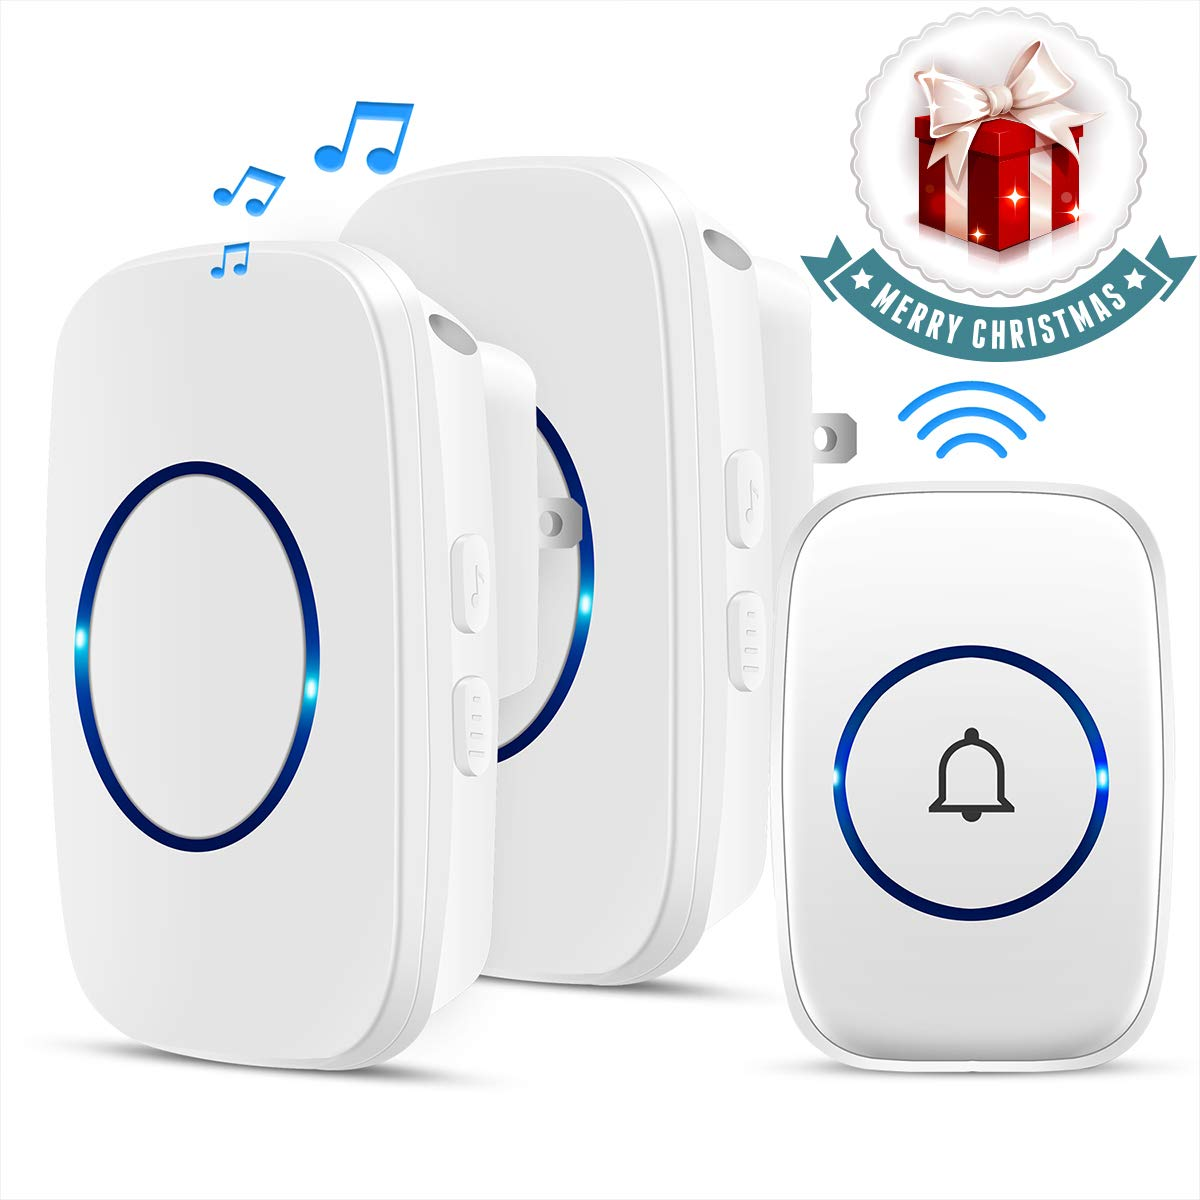 Bodyguard Wireless Doorbell Waterproof Doorbell Chime with 2 plug in Receivers and 1 Remote Push Button Operating at 1000 feet Range with 38 Chimes 3 Level Volume LED Indicator White